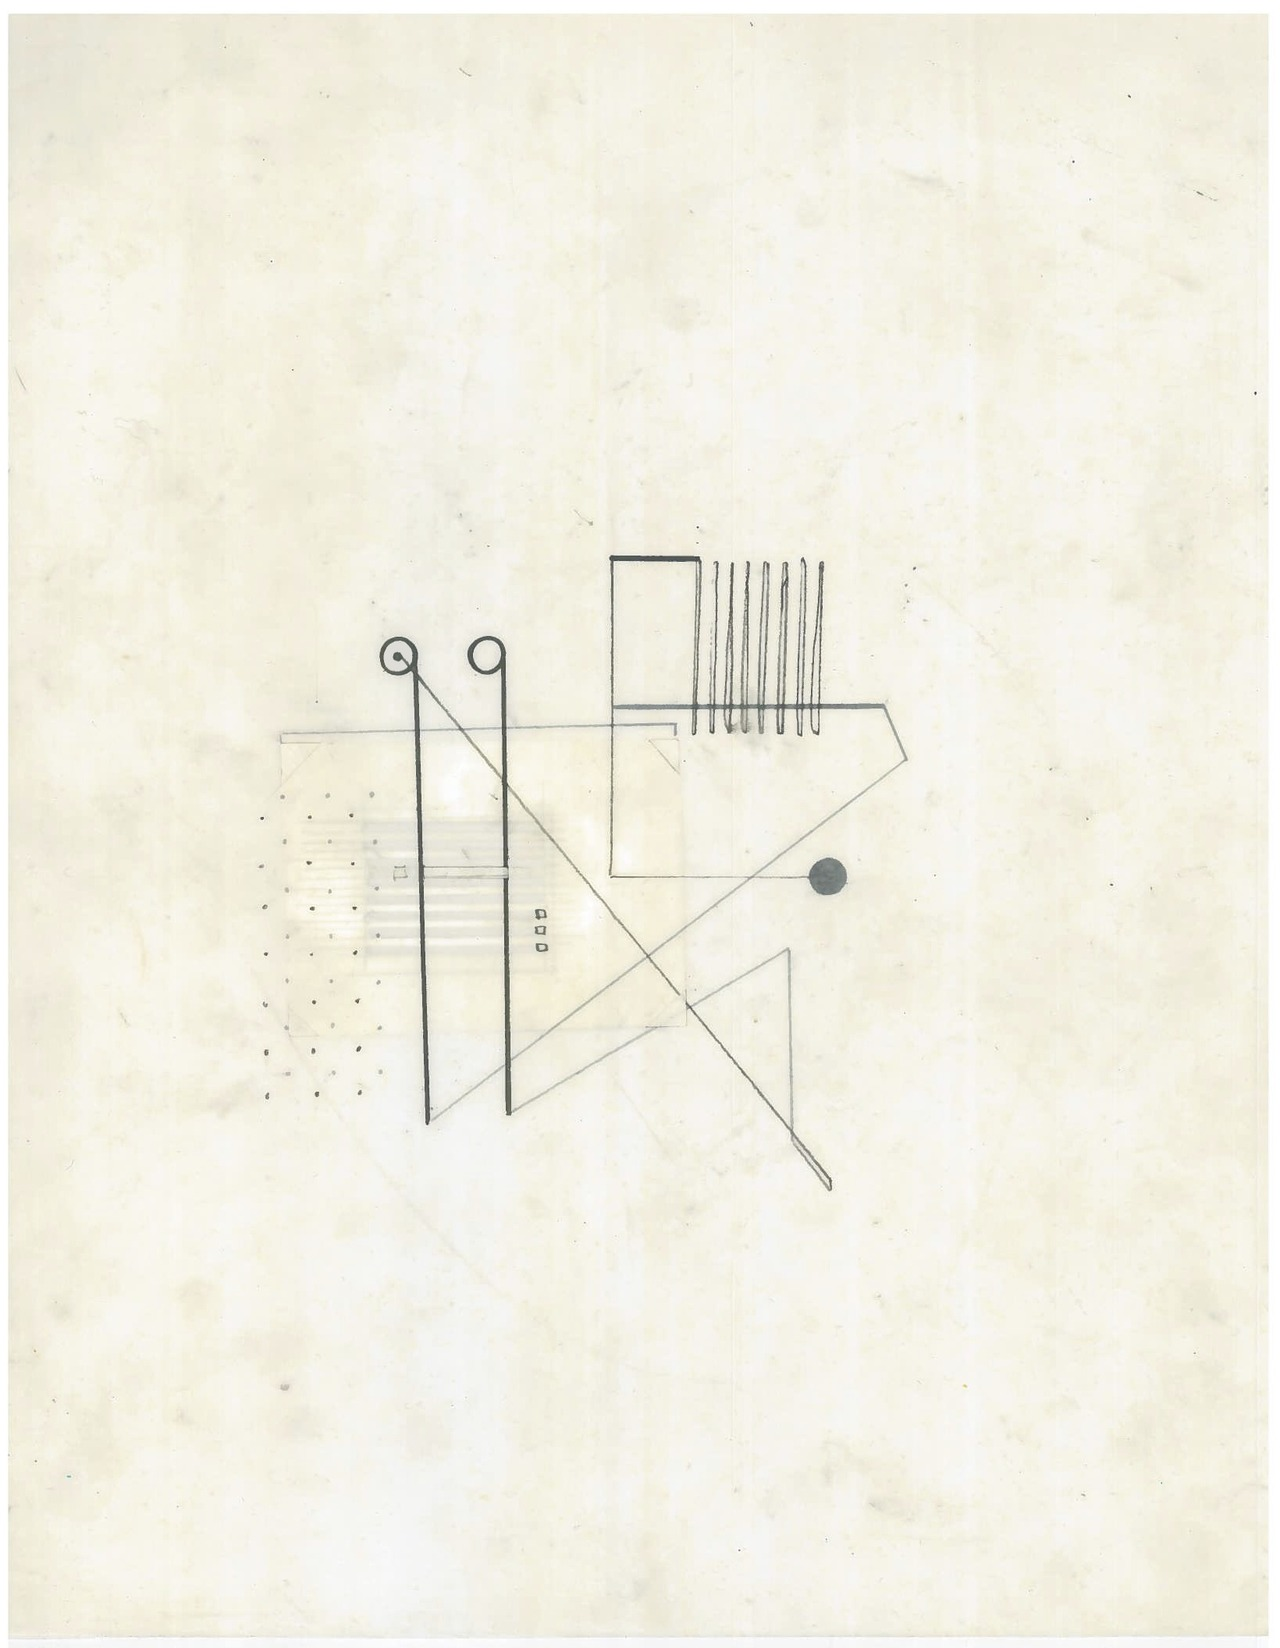 Untitled (the city, observations 20B)  Pencil and collage on oiled fabriano paper  279mm x 216mm  December 2013